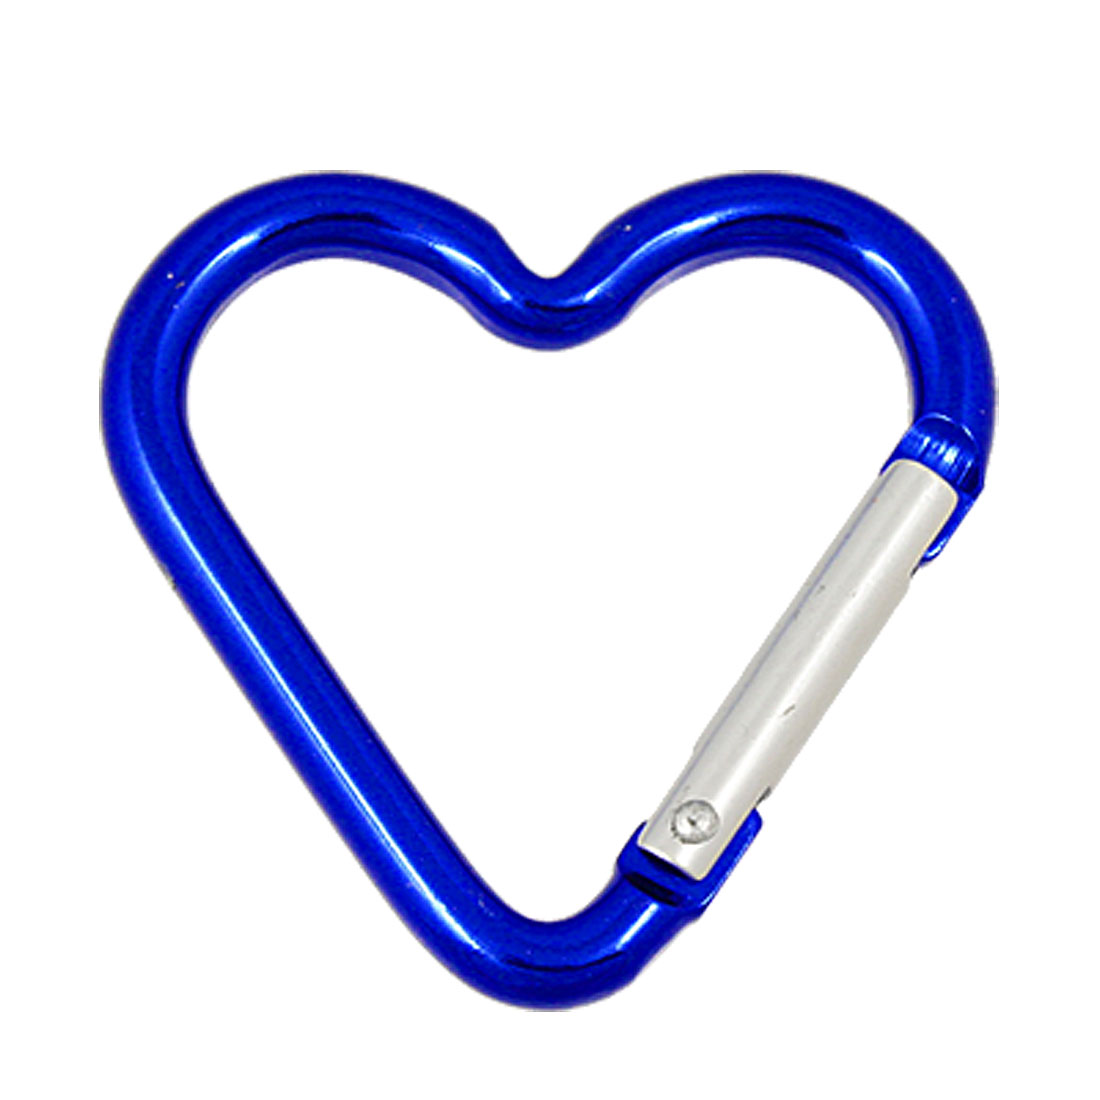 Aluminum Heart Shape Silver Tone Spring Loaded Gate Blue Carabiner Hook